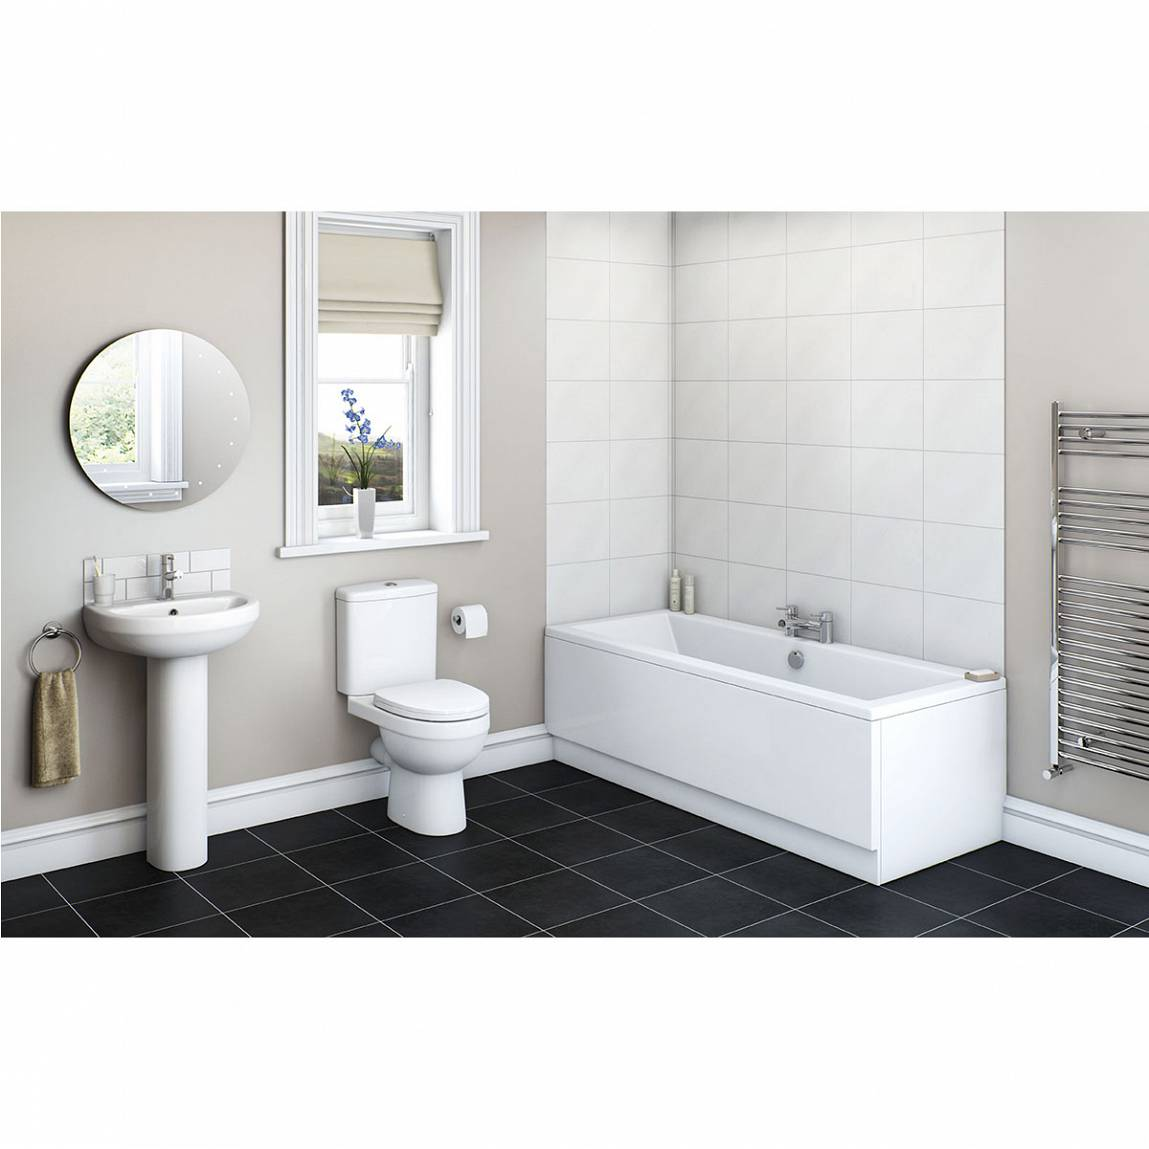 Image of Energy Bathroom Set with Chelsea 1700 x 700 Bath Suite